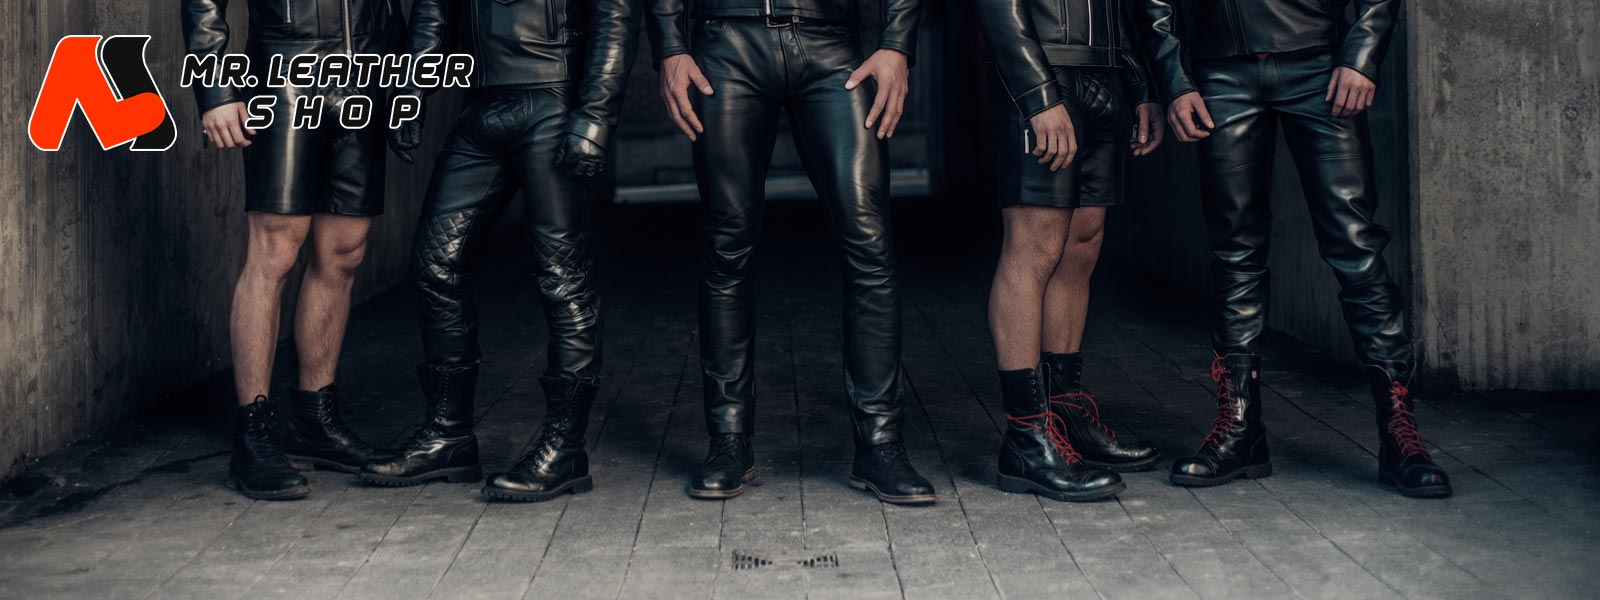 Mr. Leather Shop Custom Leather Pants